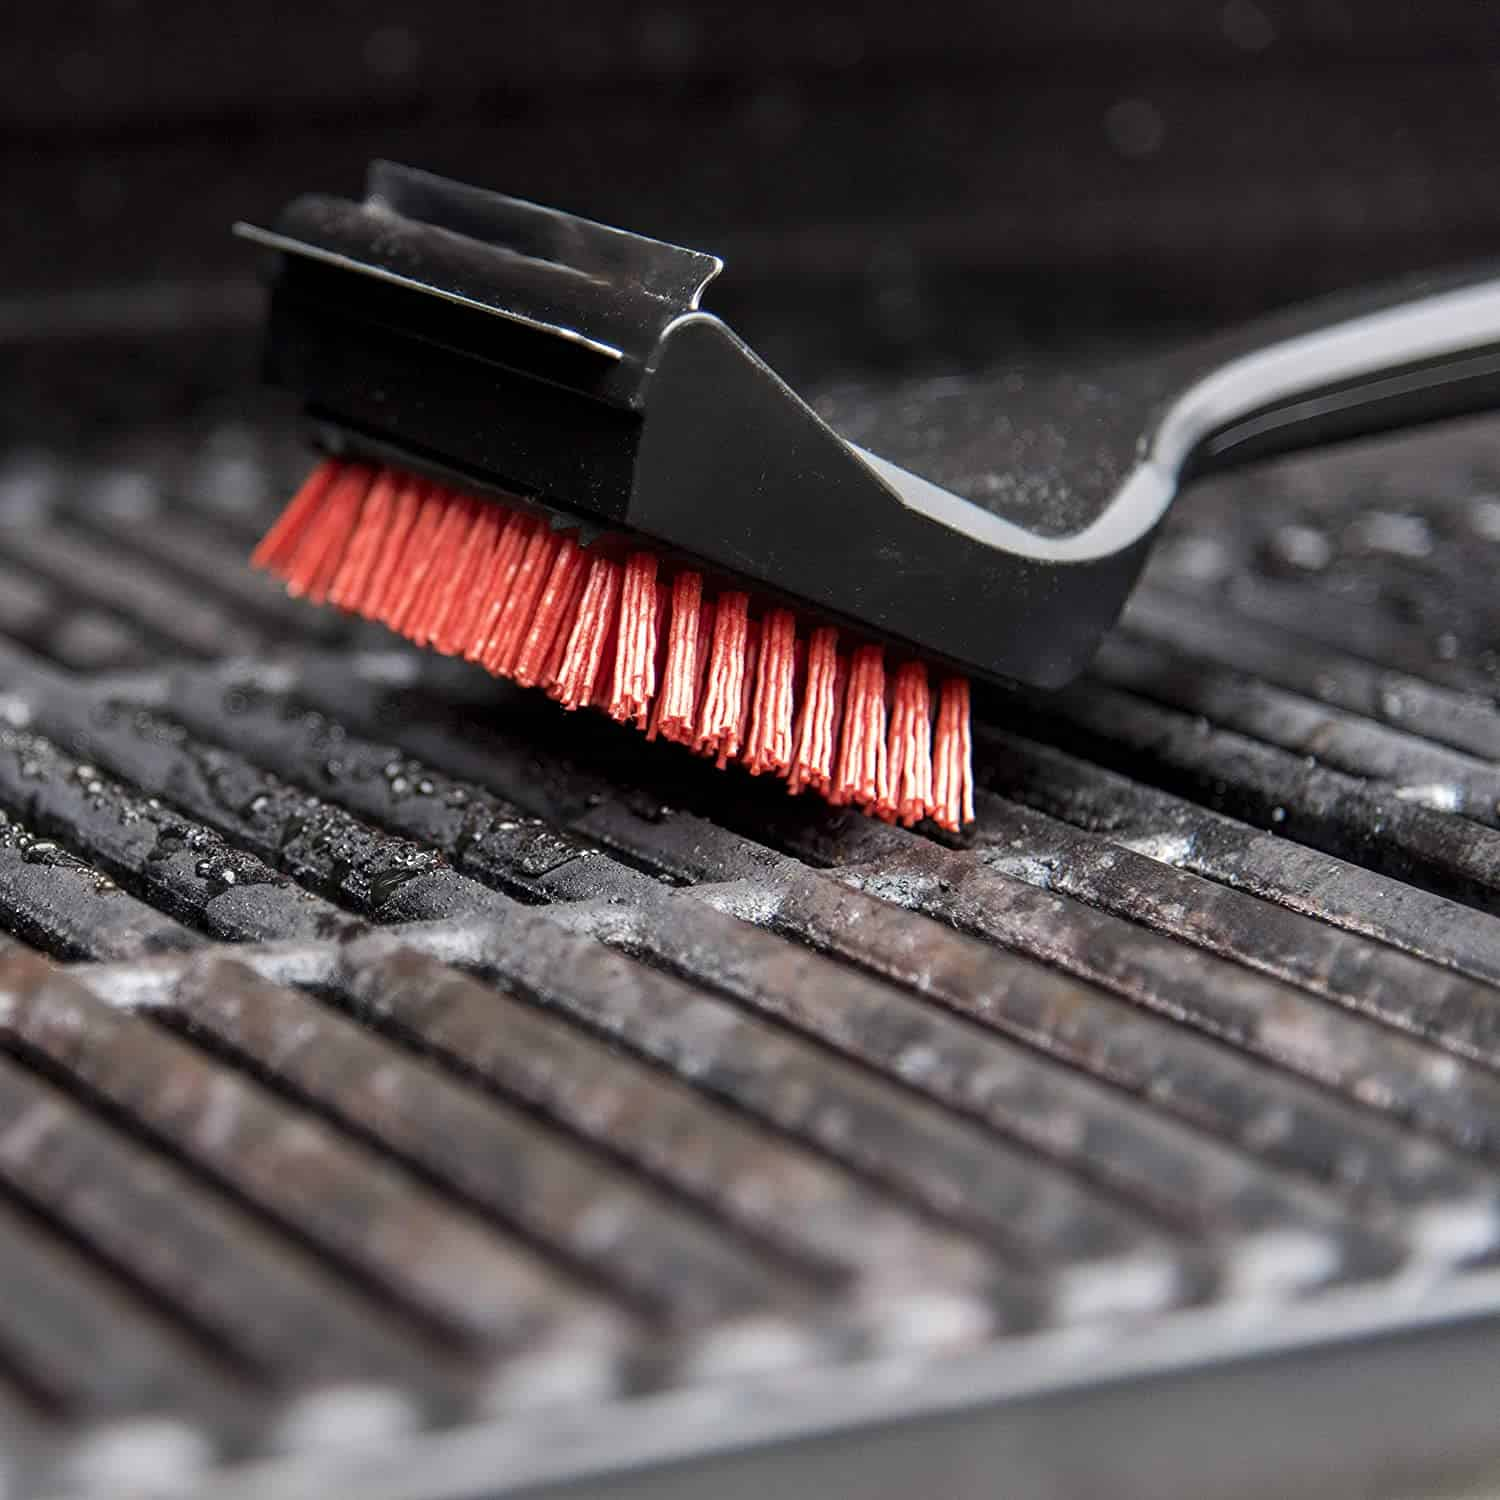 Best nylon grill brush- Char-Broil SAFER Grill Brush on the grill